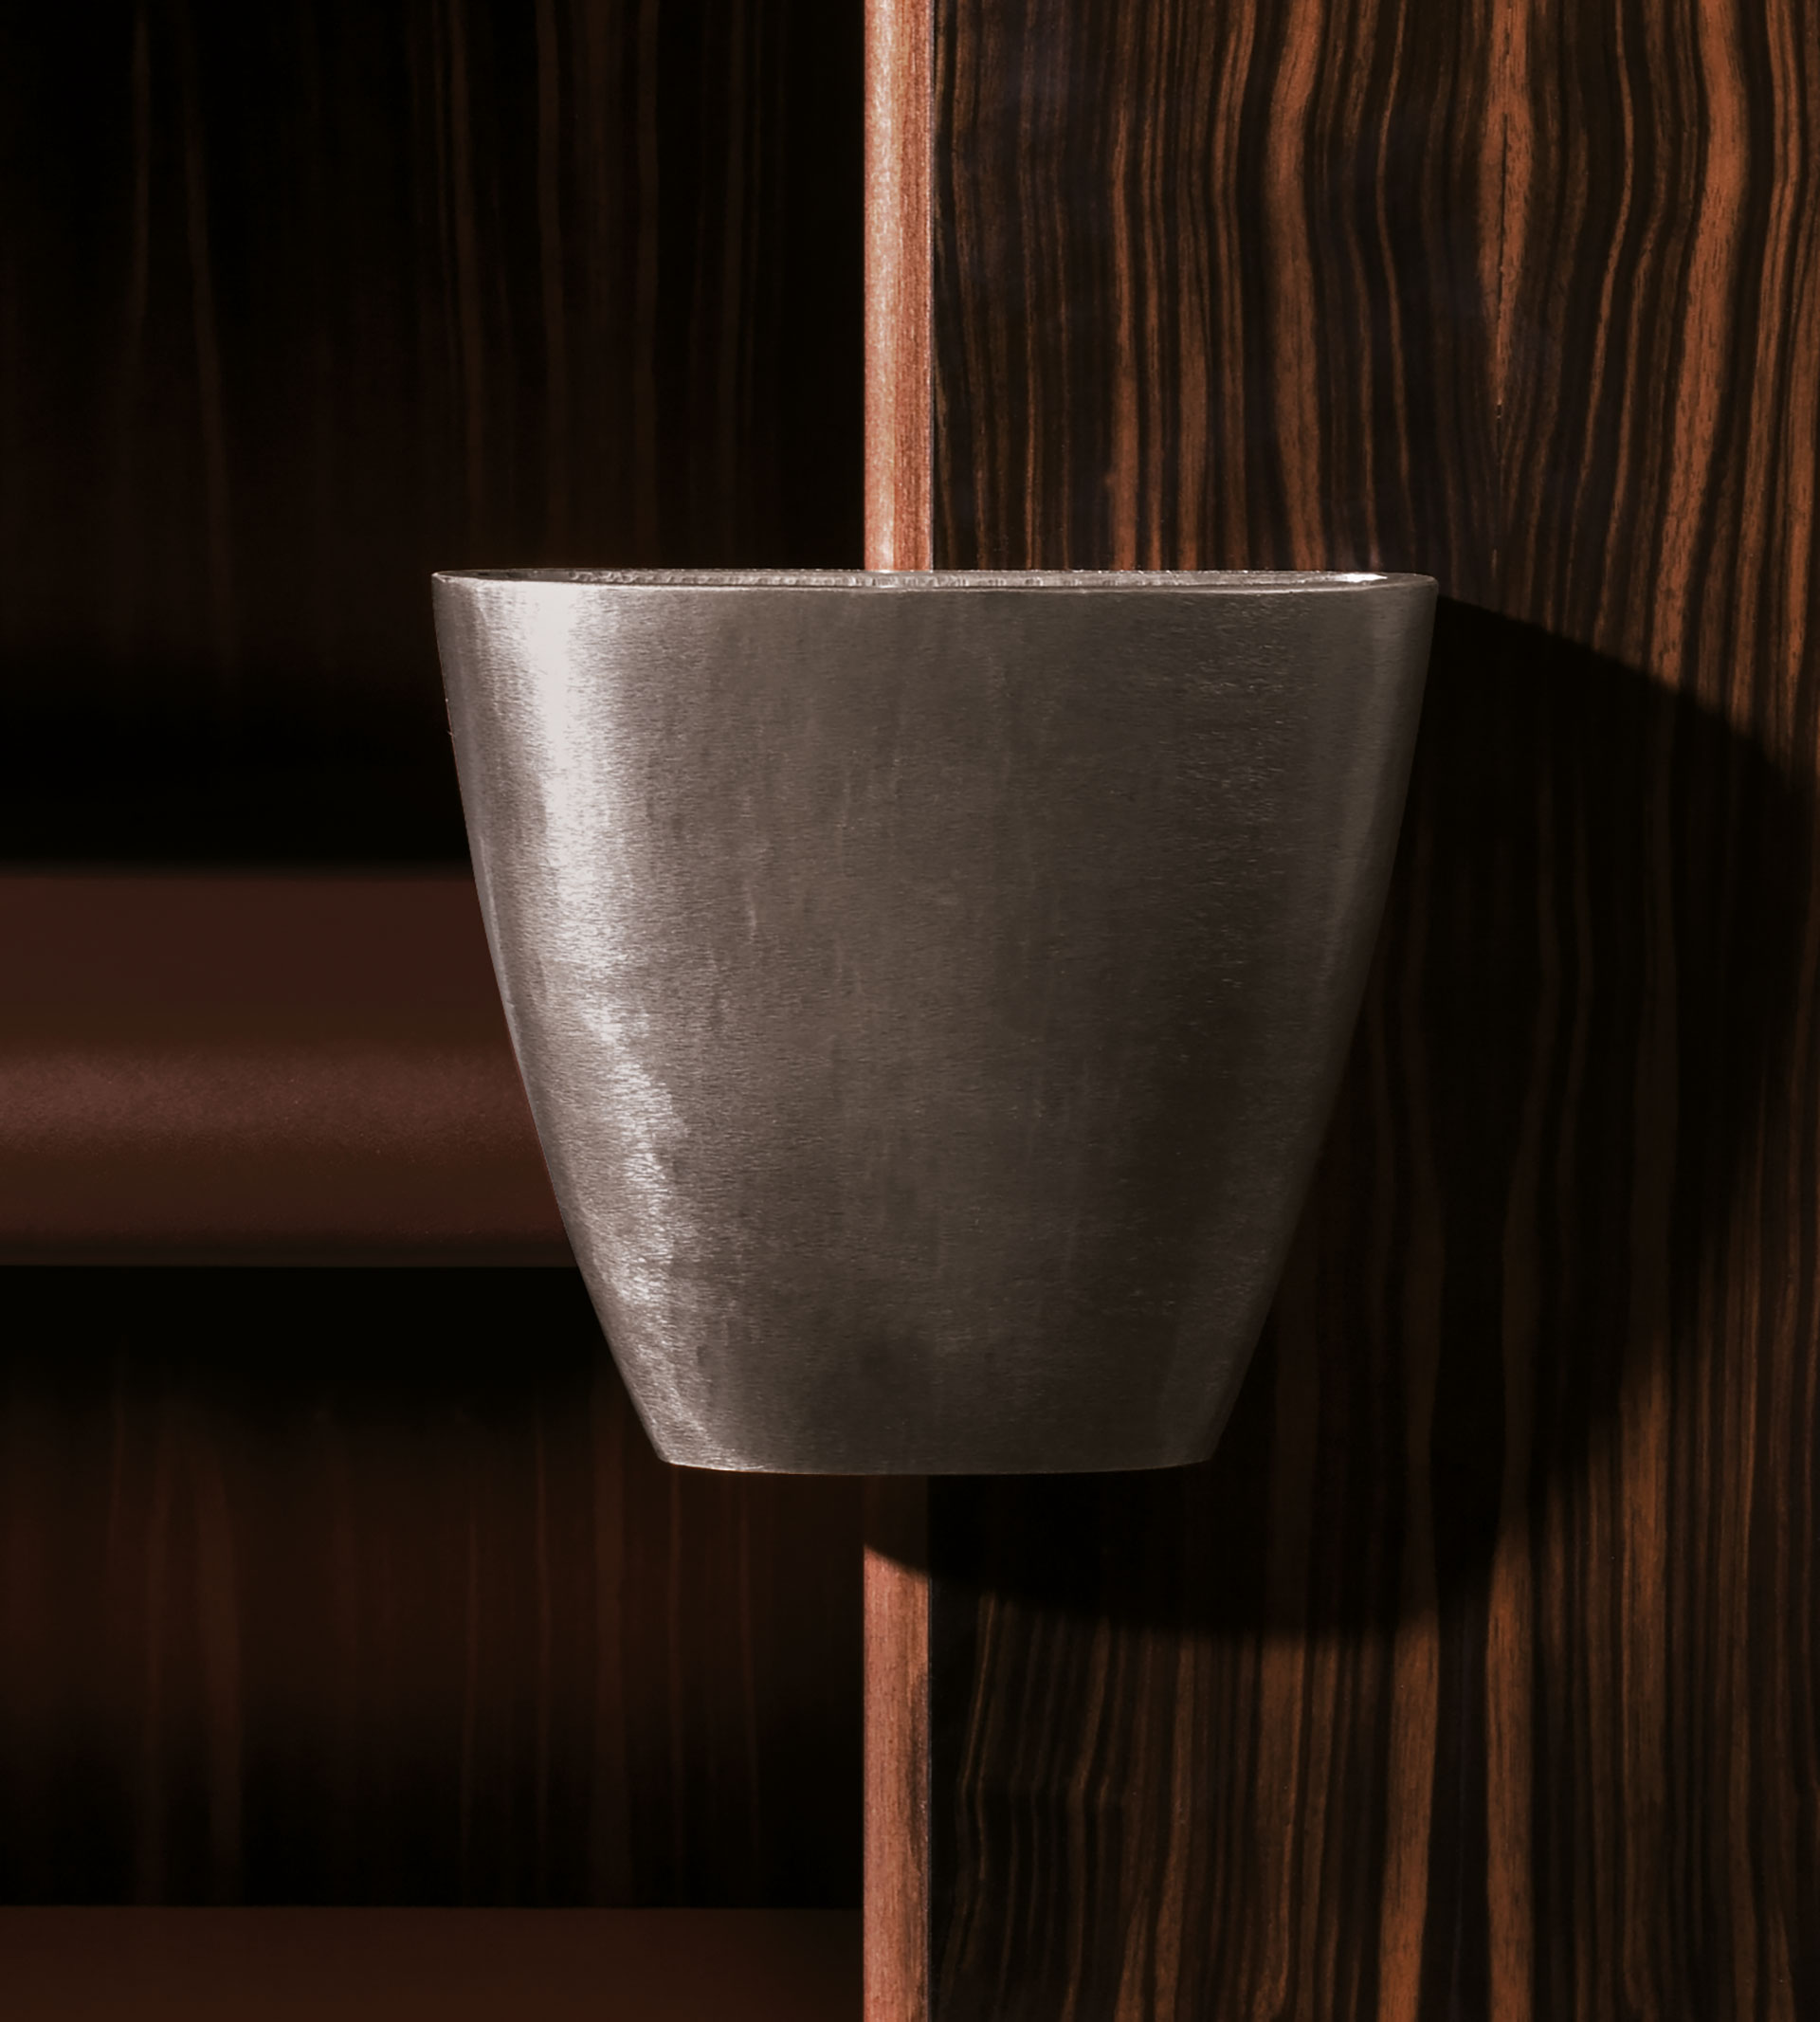 Bronze handle detail of Bonaventura, a wooden cabinet with bronze base, from Promemoria's catalogue | Promemoria